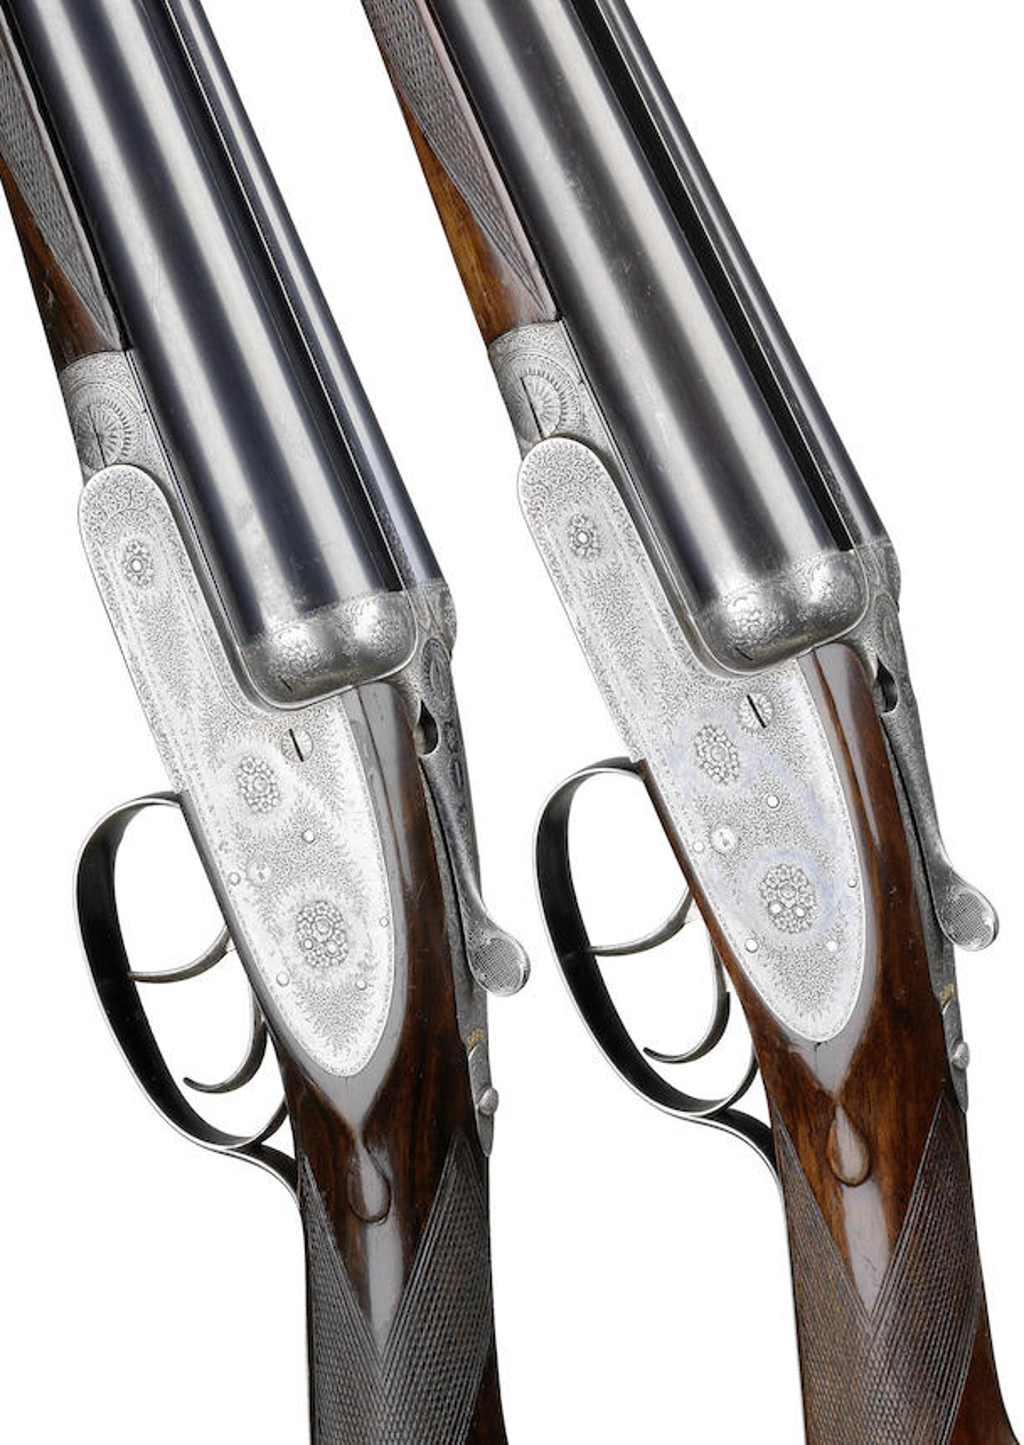 pair of 12-bore self-opening sidelock ejector guns by J. Purdey, no. 18430-1